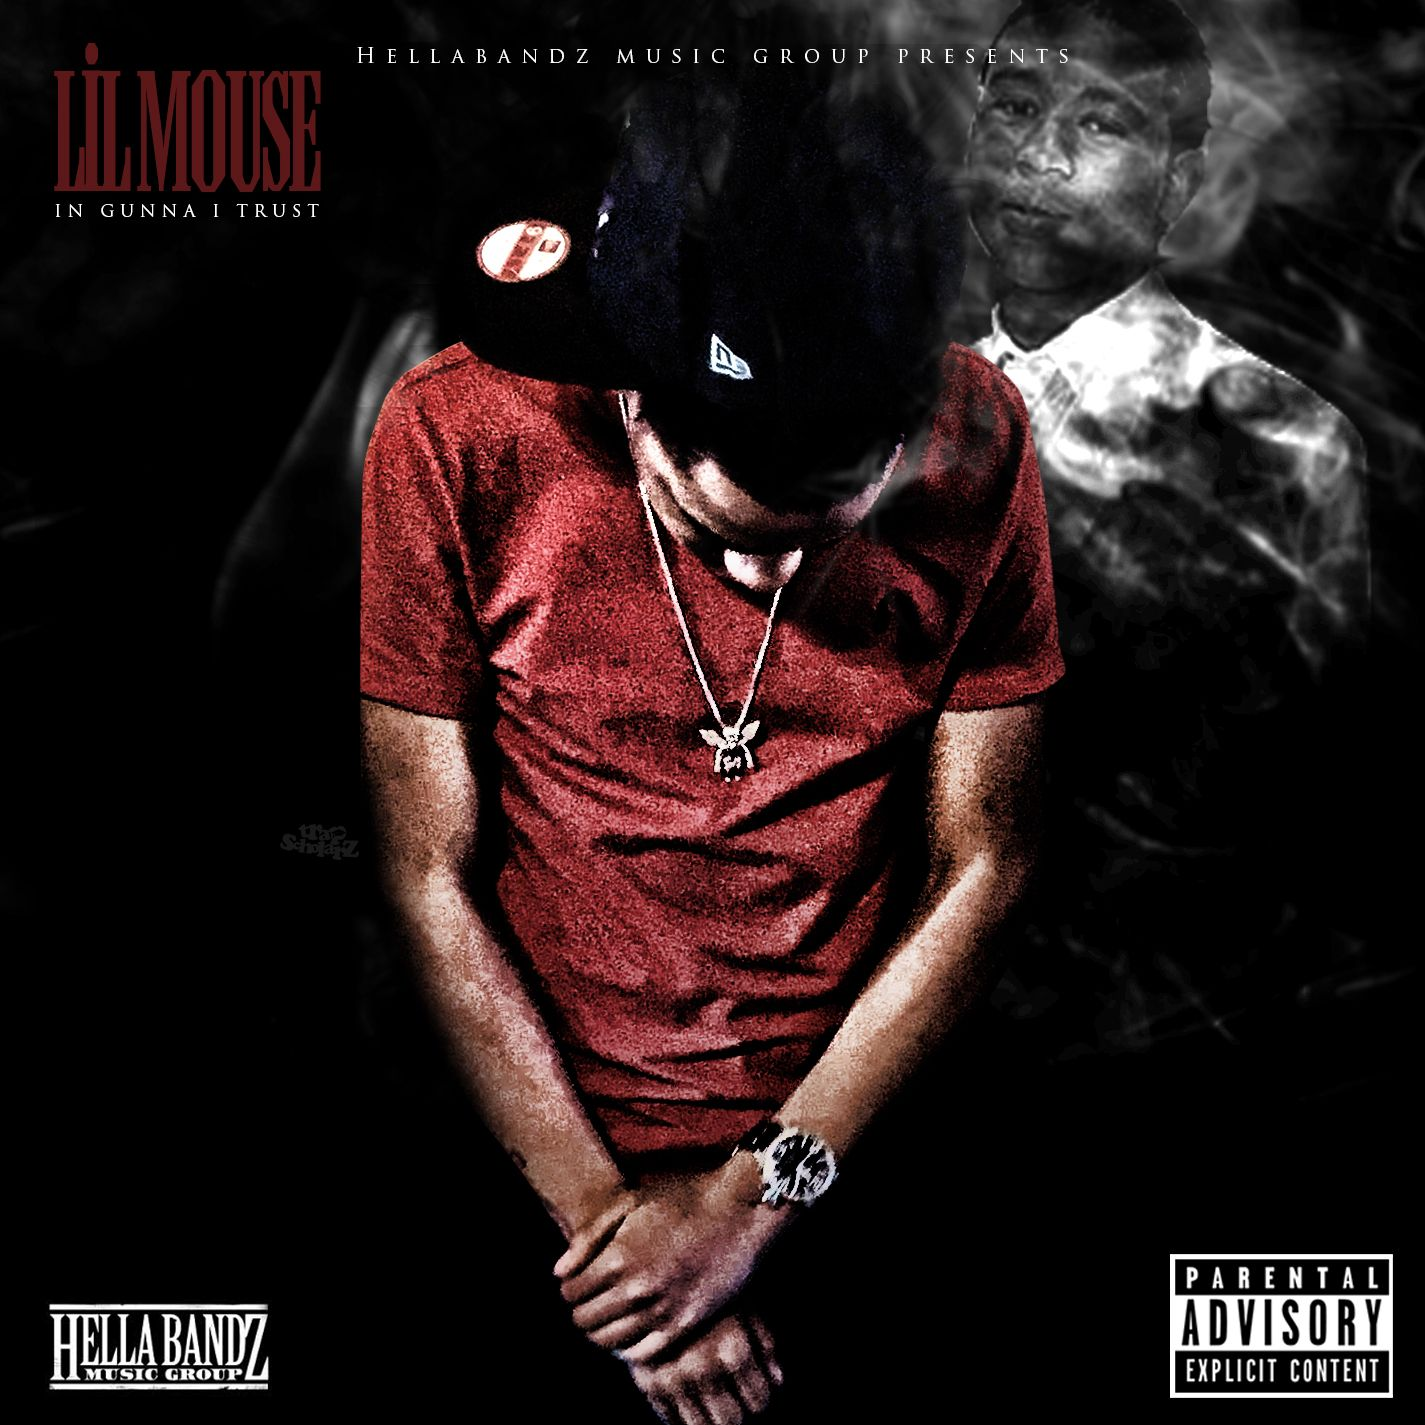 Lil Mouse-In Gunna I Trust : TopMixtapes